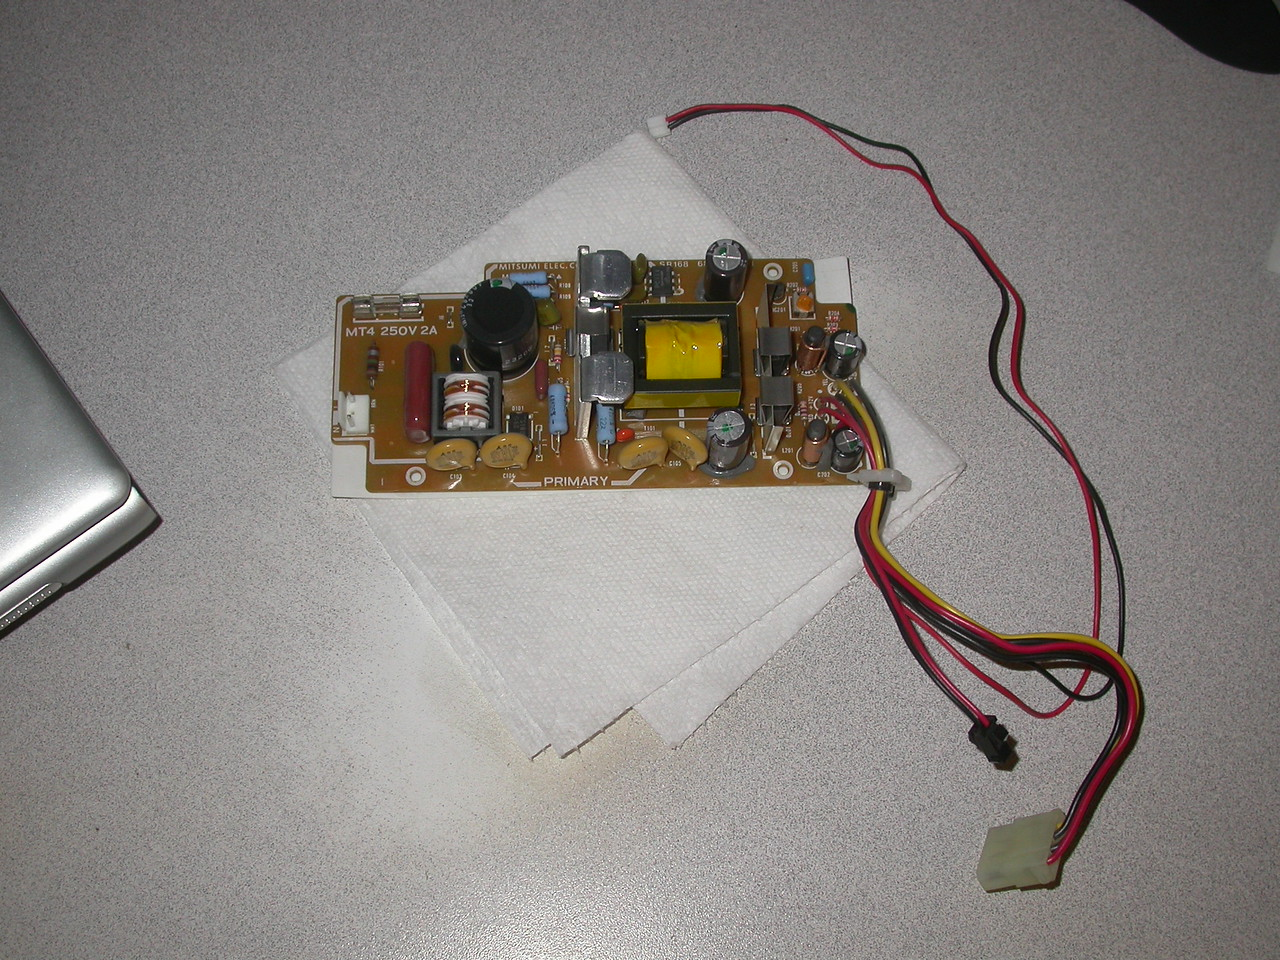 Power supply from the case.  Long power line is current limited to run an LED, drive cable has +5v on red and +12 on yellow.